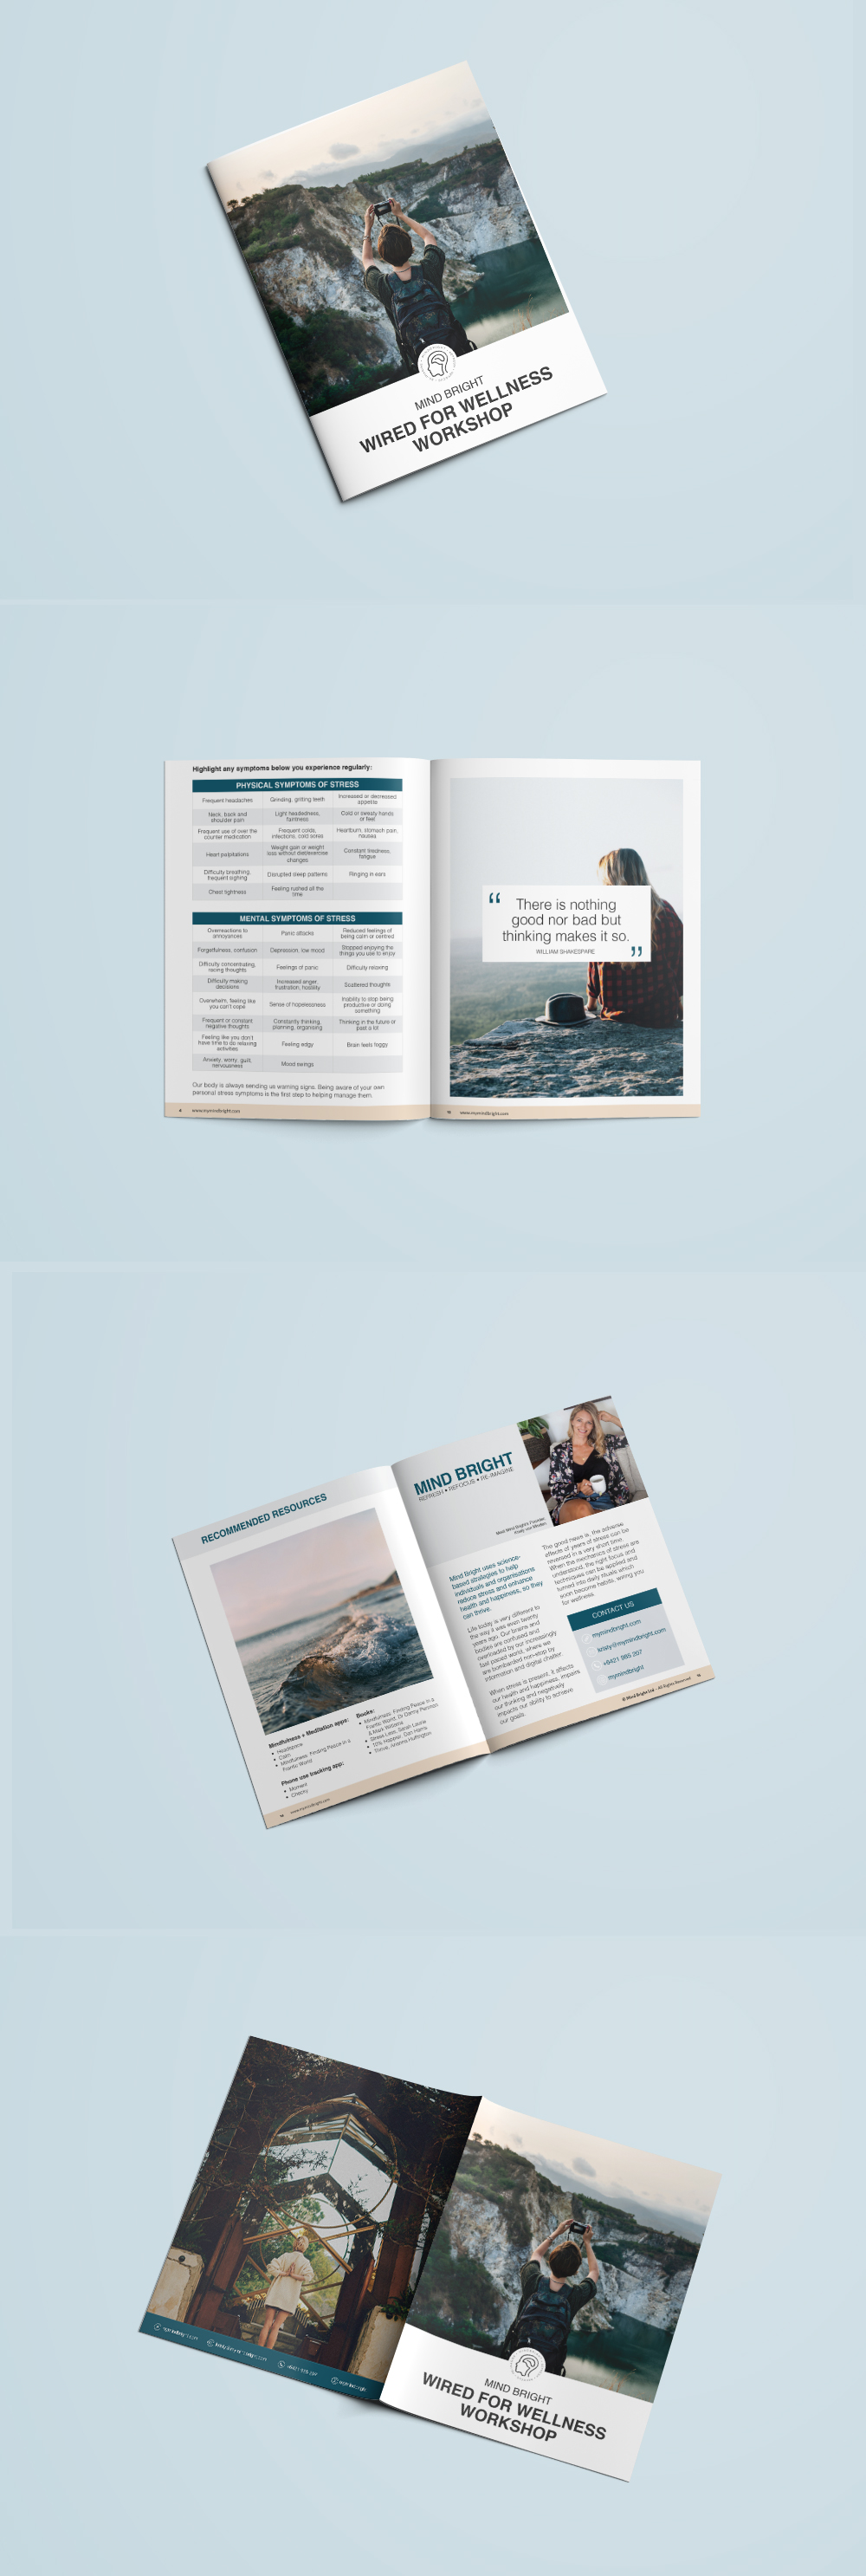 mindbright_booklet_design.jpg